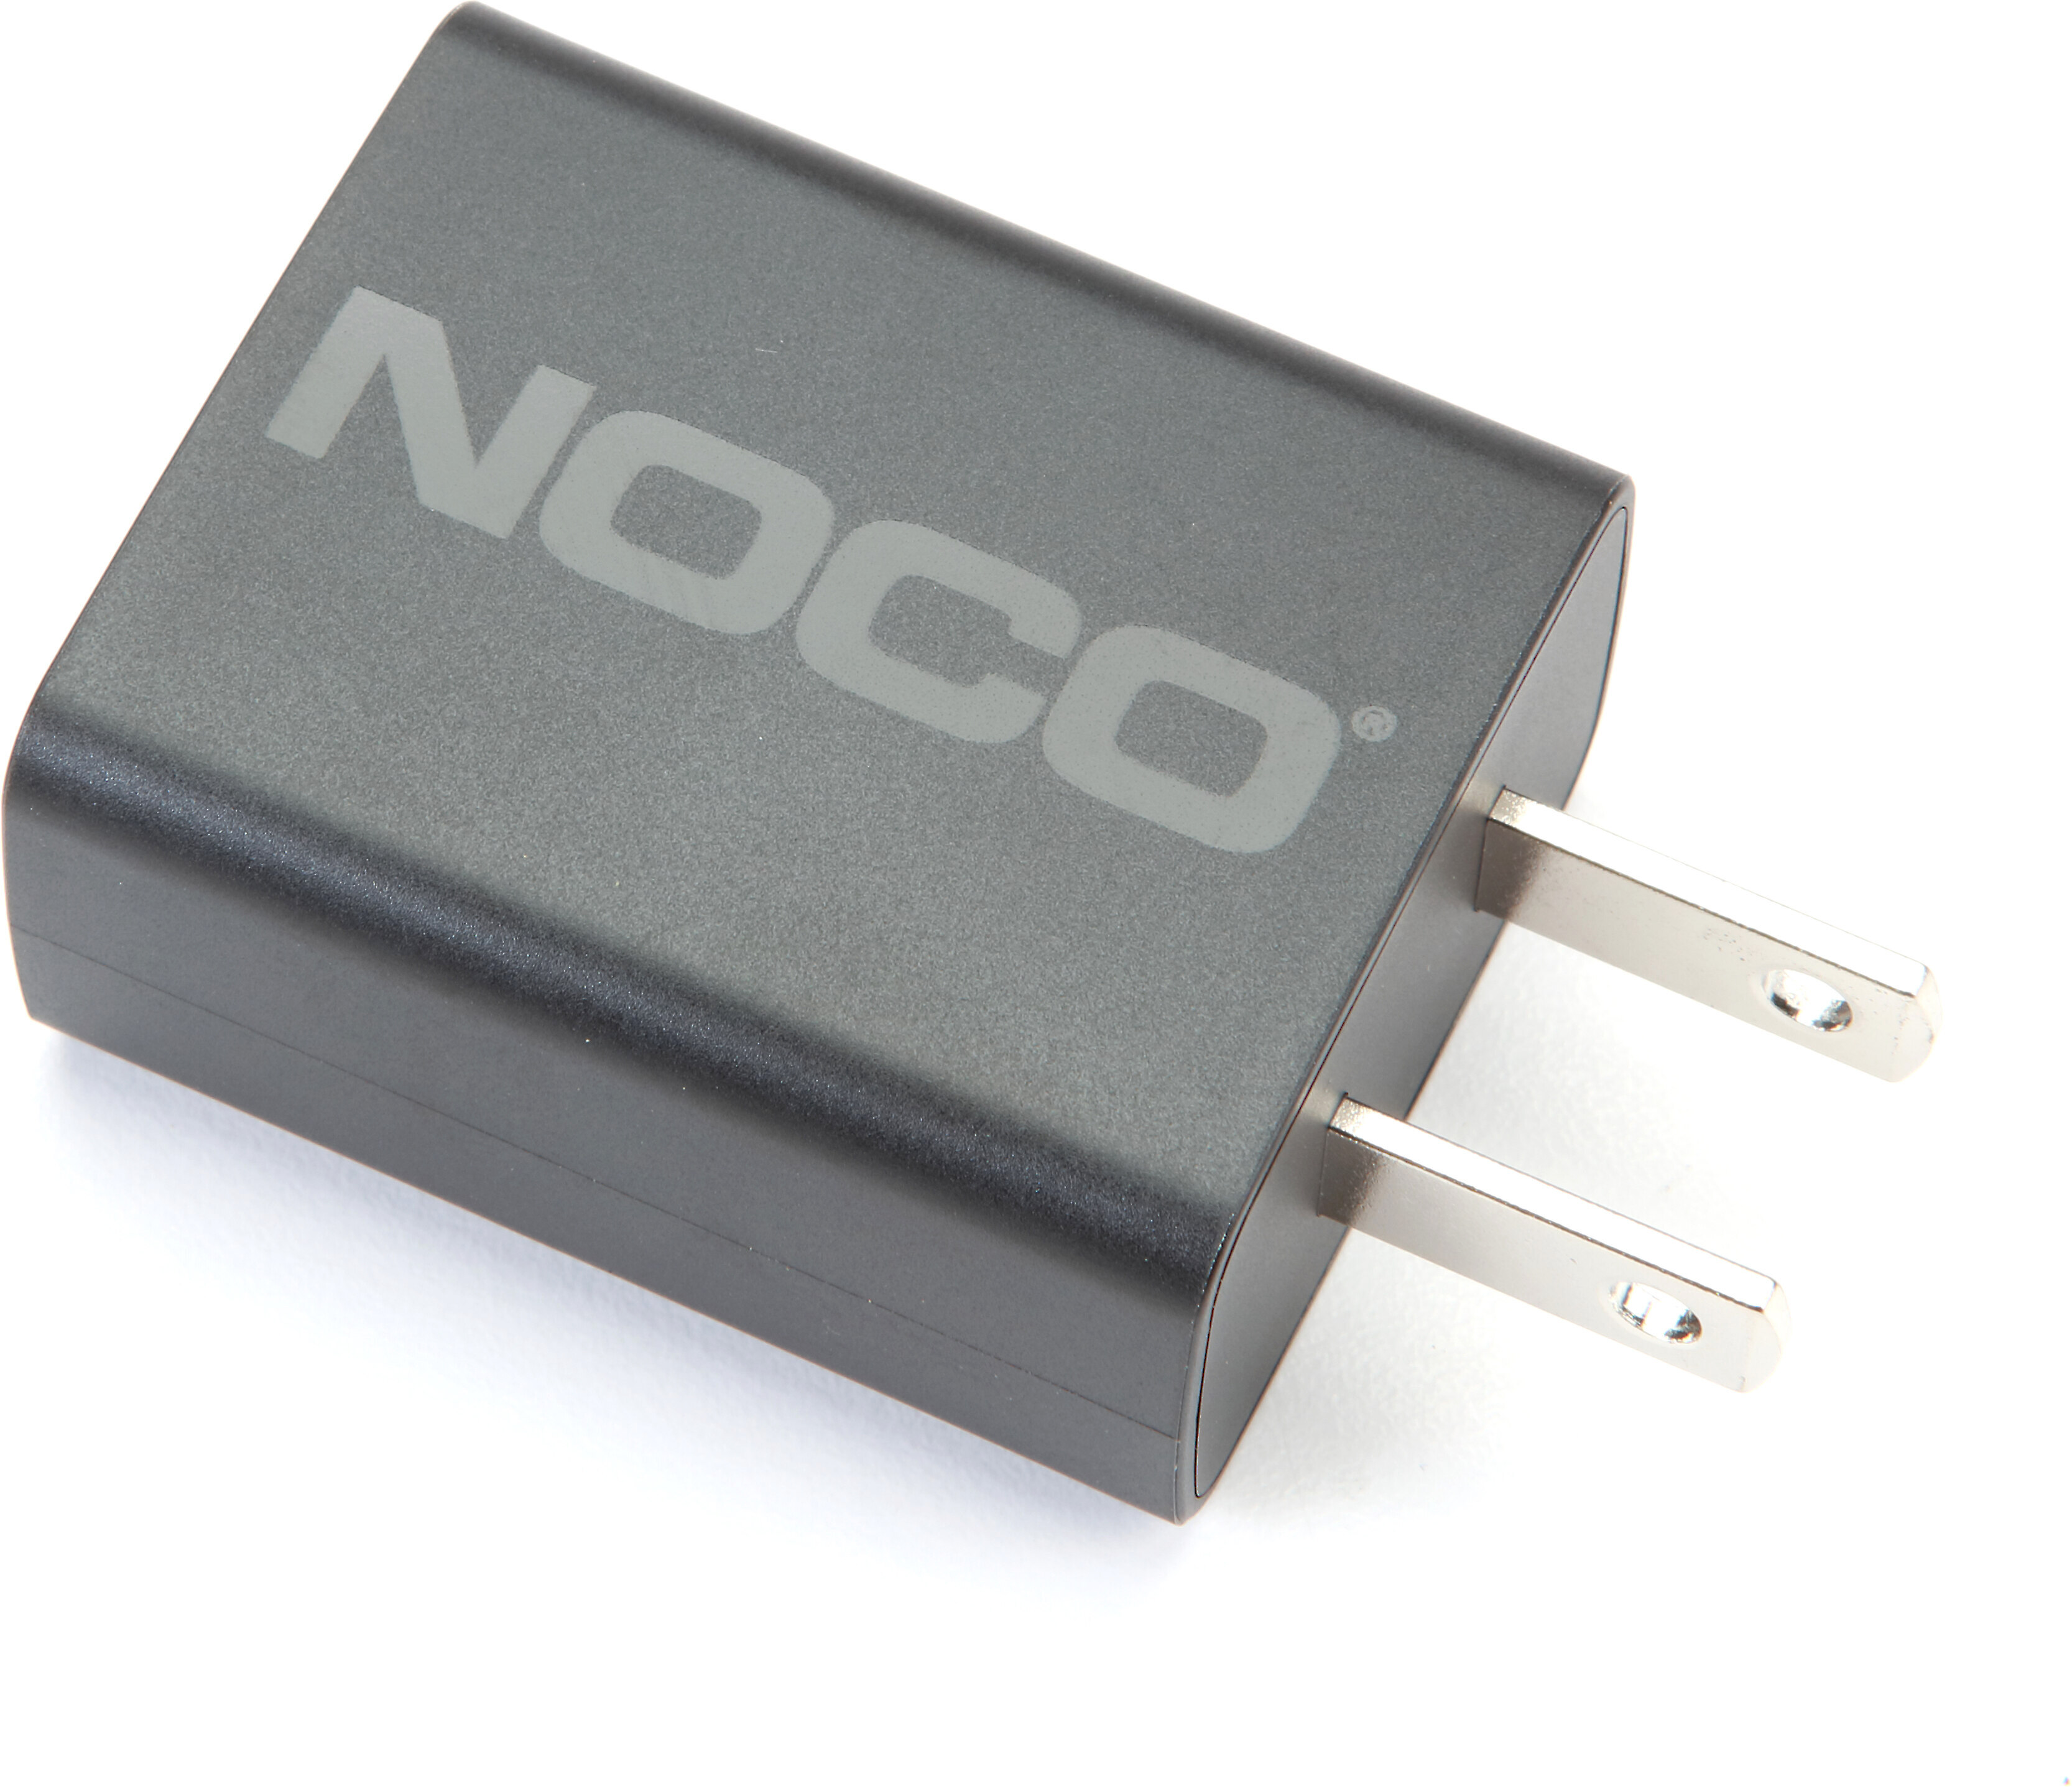 THE NOCO COMPANY NUSB211NA NOCO 10W AC USB CHARGER